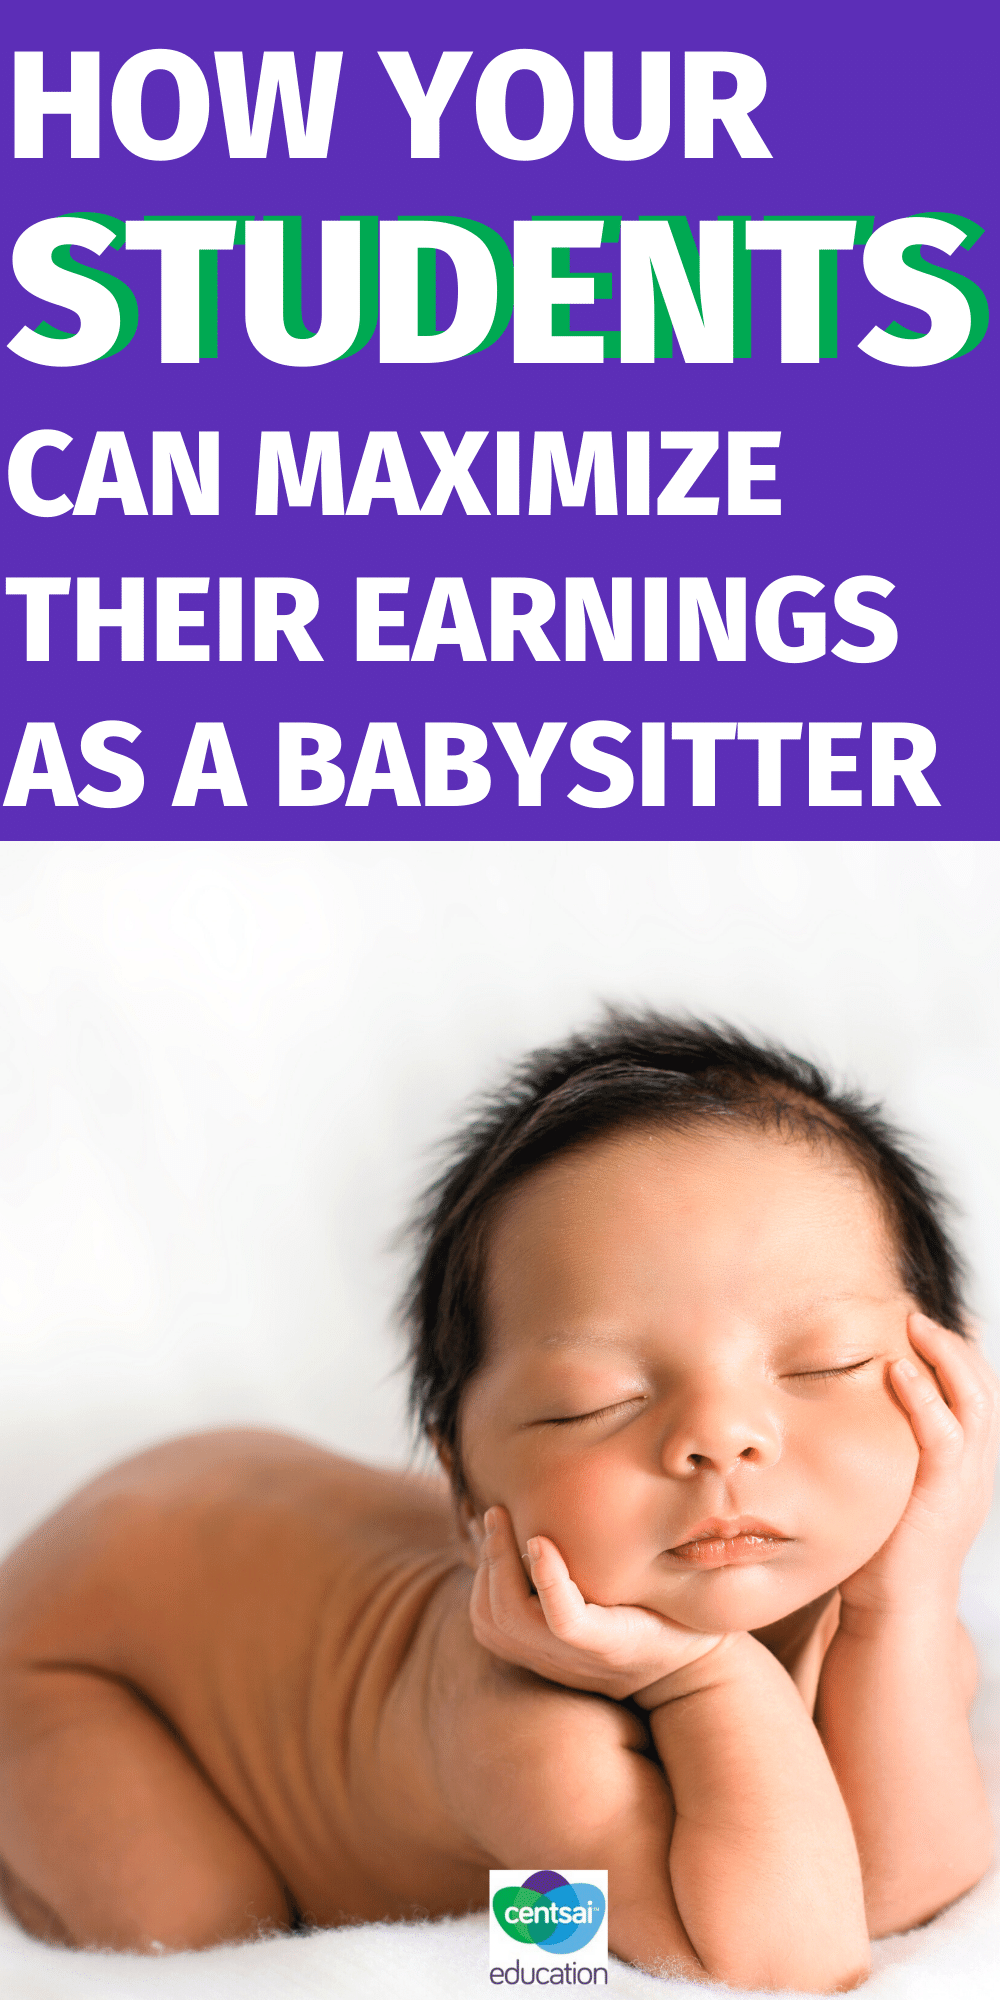 Tons of high school students earn money babysitting. Here are some practical tips to help them earn as much as possible! #Makemoneyincollege #howmakemoney #makeextramoney #makequickcash